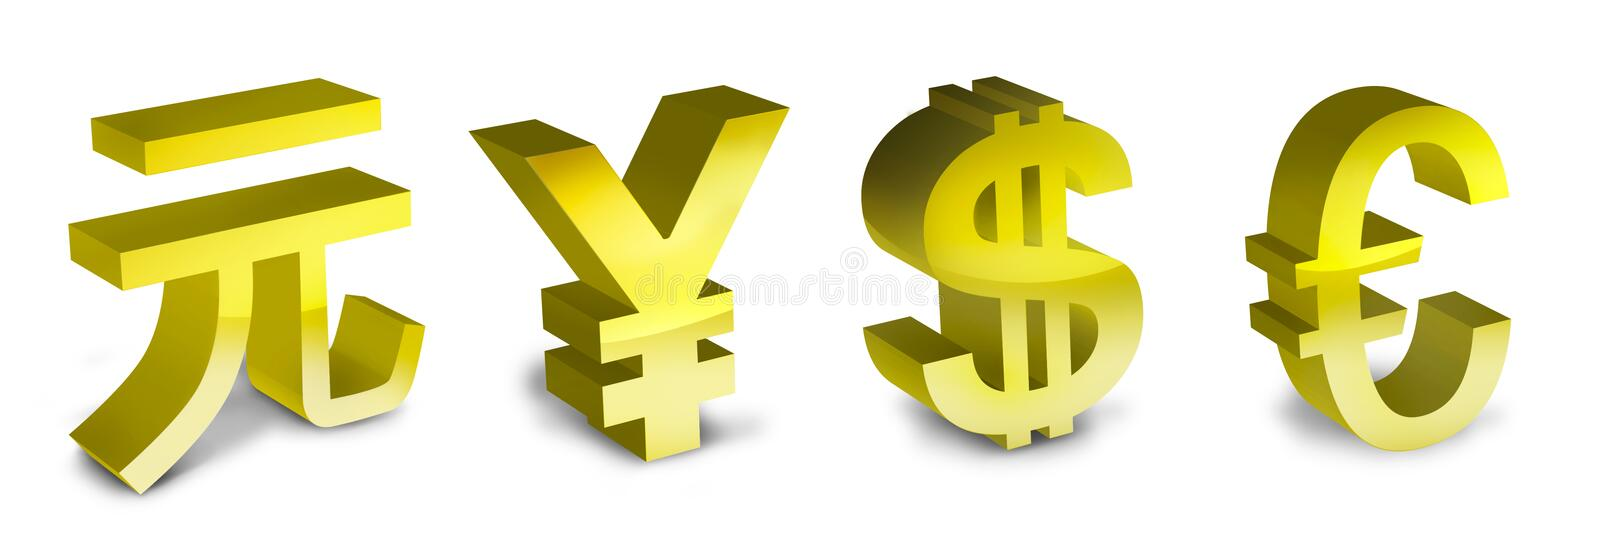 Download Symbols Of The Euro, Yen, Yuan And Dollar Stock Illustration - Image: 16481386